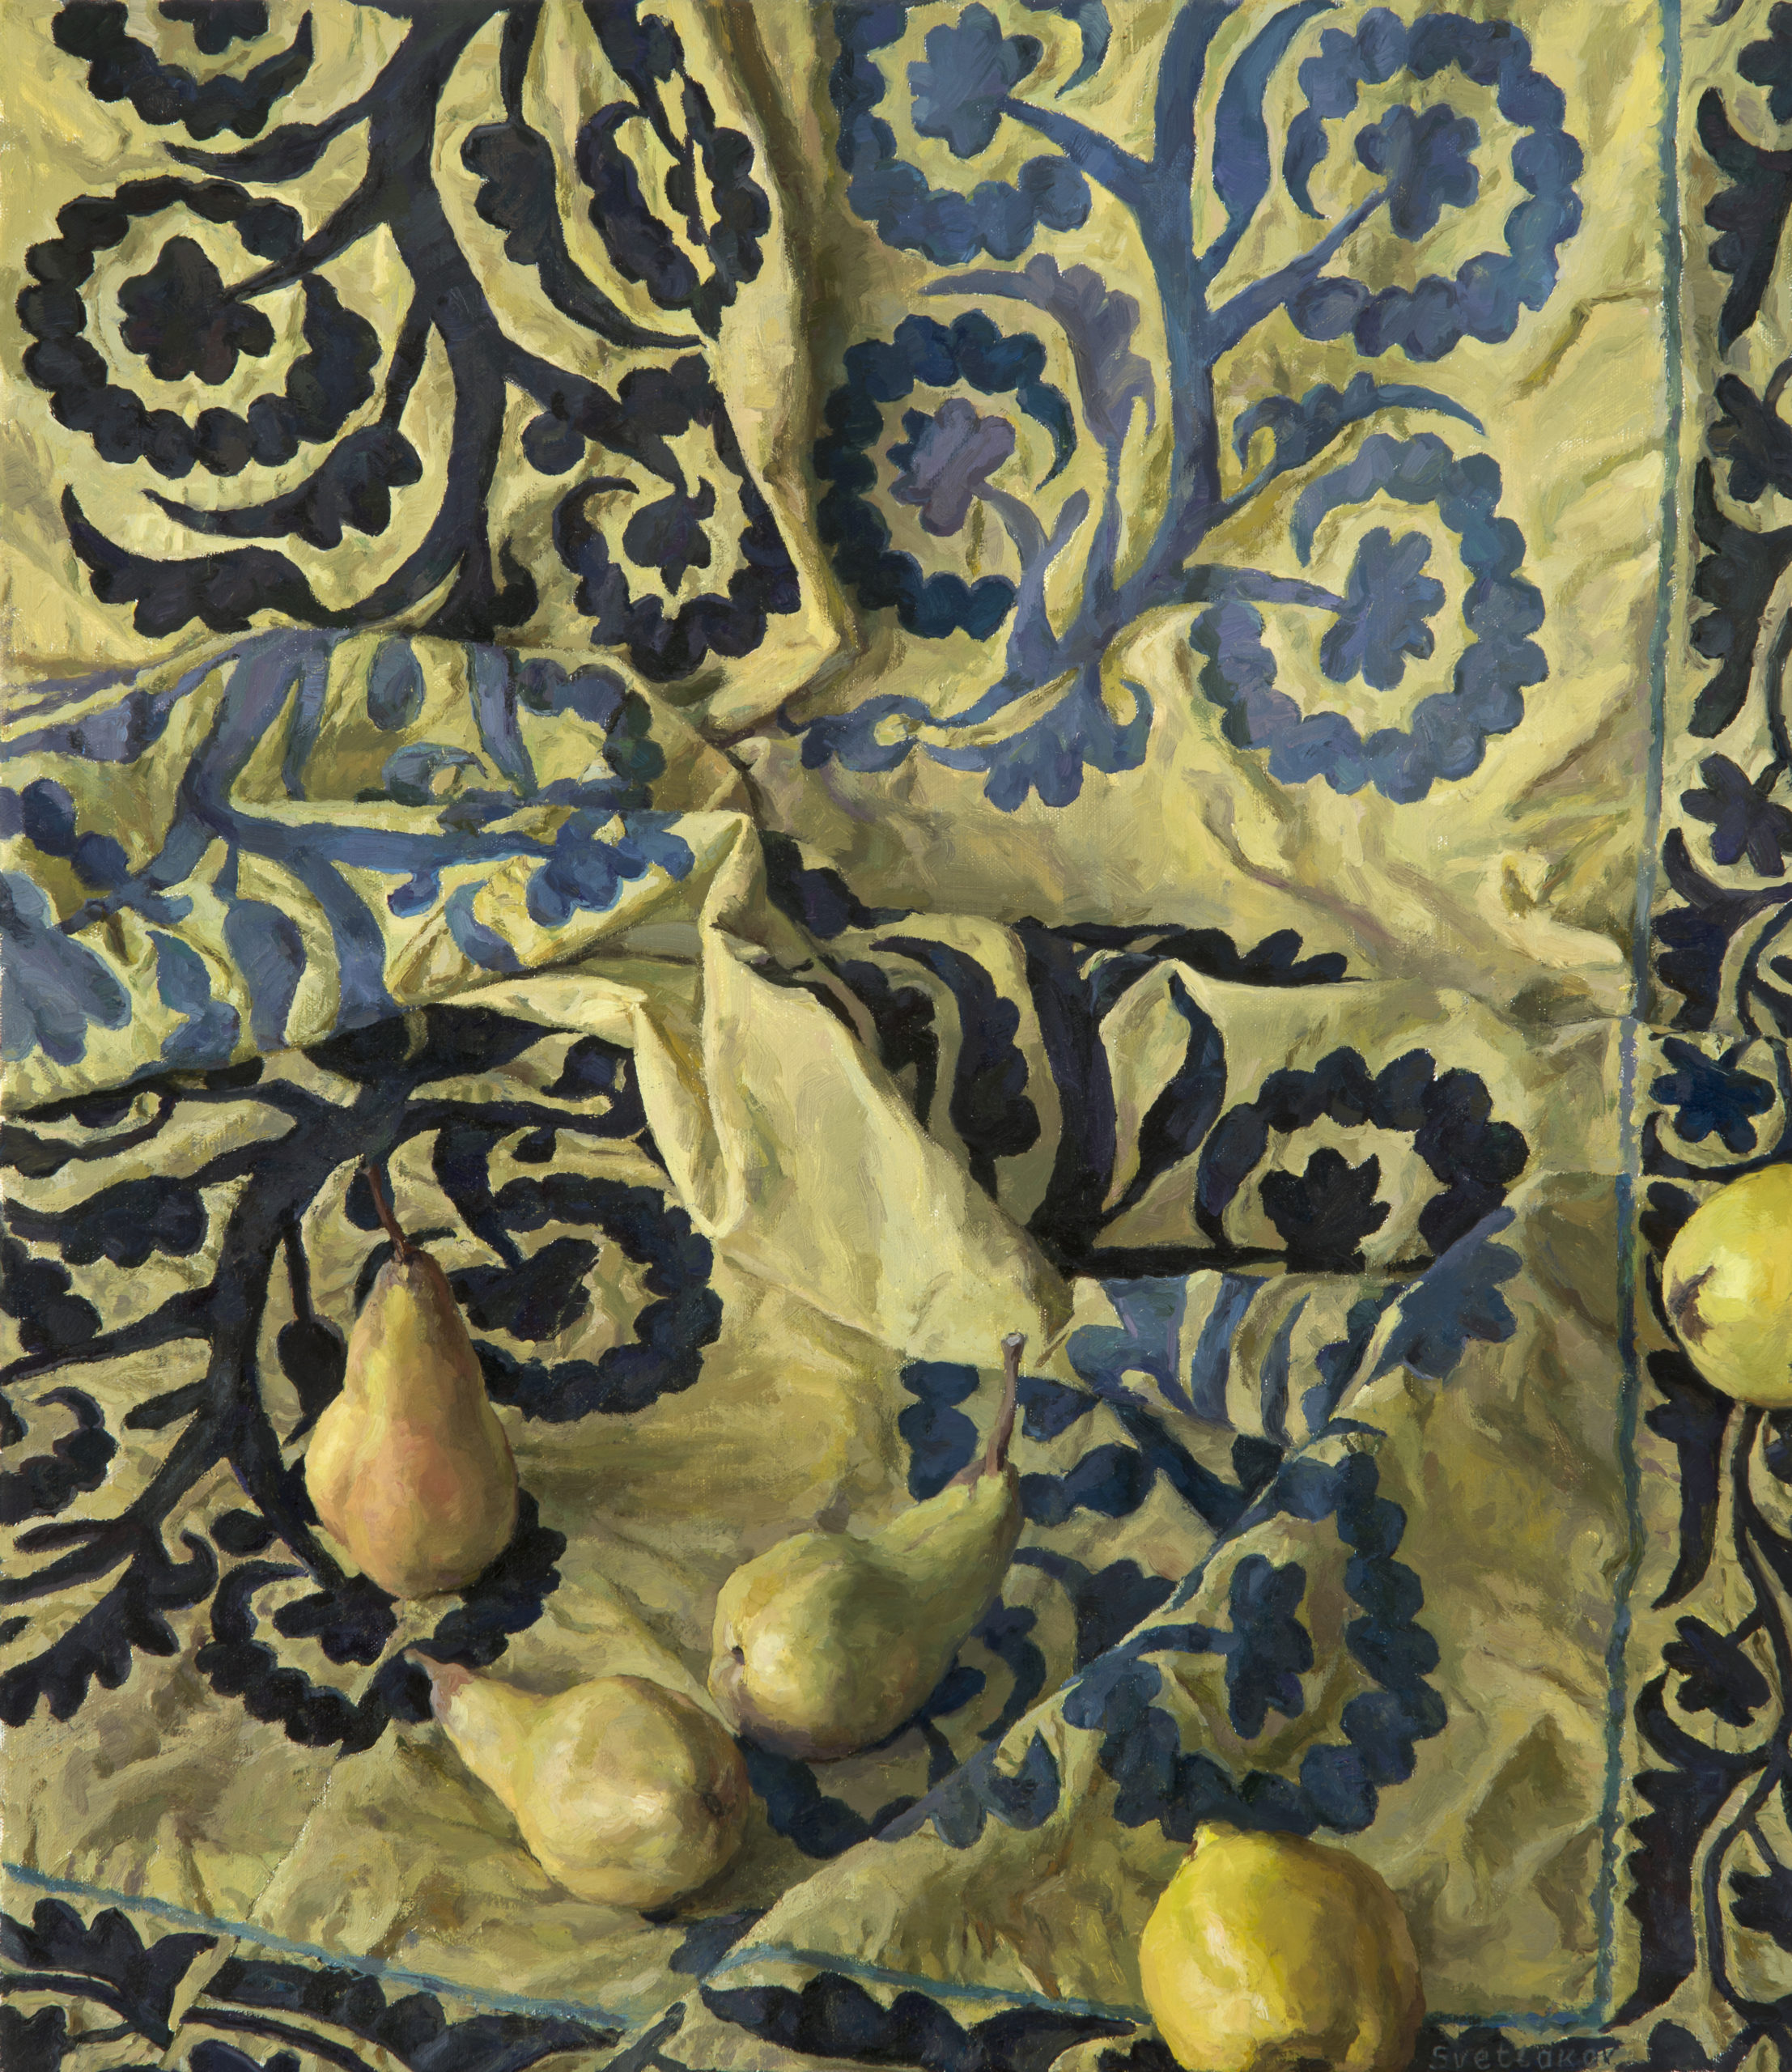 Quince and Pears against the background of Central Asian Suzani: oil on canvas, 70x55 cm. 2012.